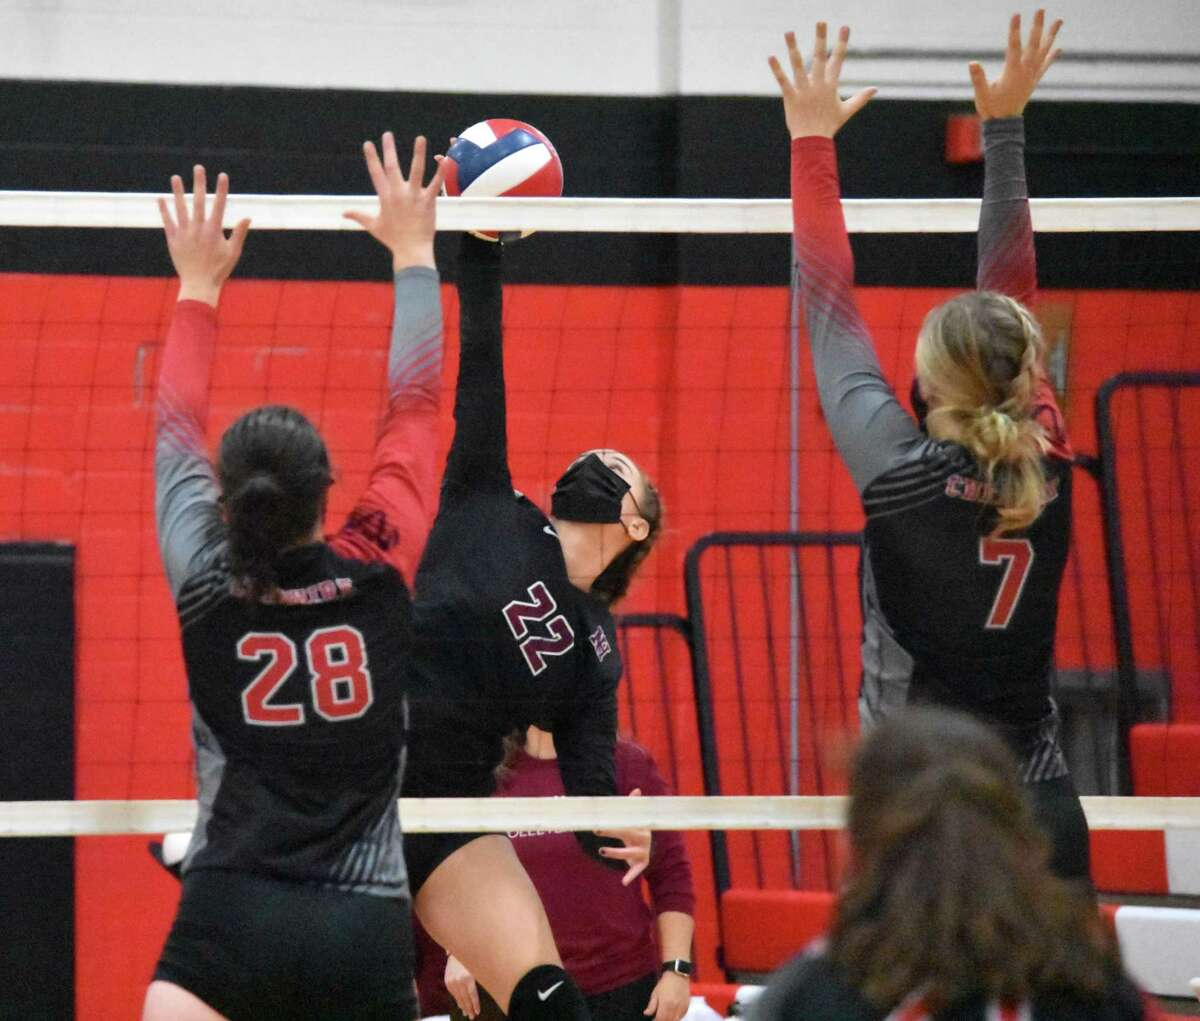 North Haven's Caroline Toni spikes the ball against Cheshire in SCC Division B girls volleyball championship game at Cheshire High School on Friday, Oct. 13, 2020.